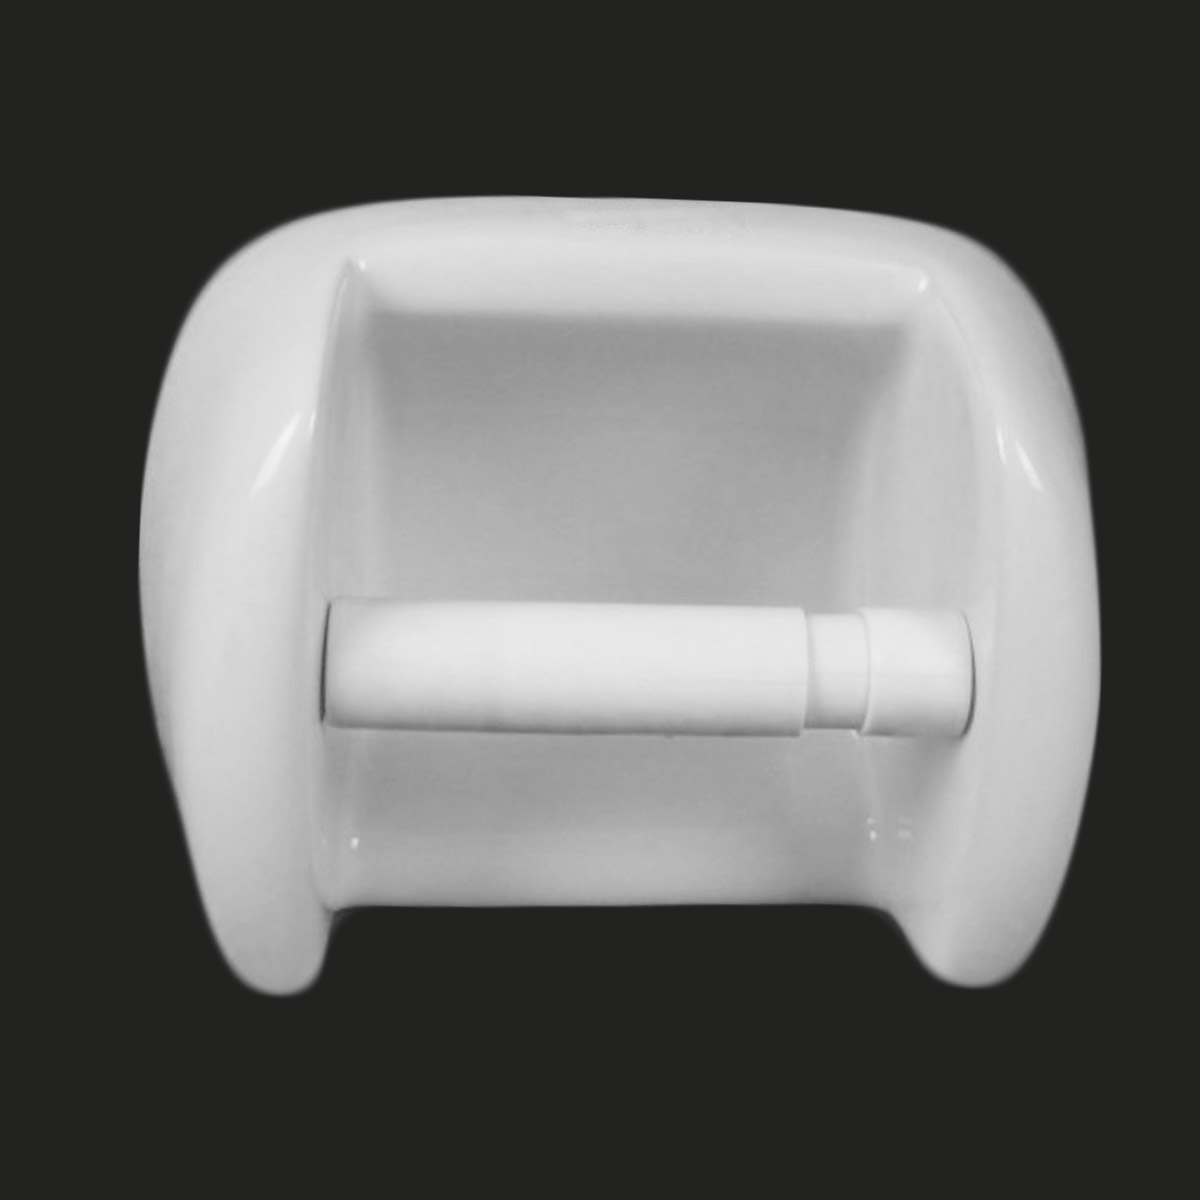 Replacement white paper roll holder roller spindle spring - Toilet paper holder spindle ...